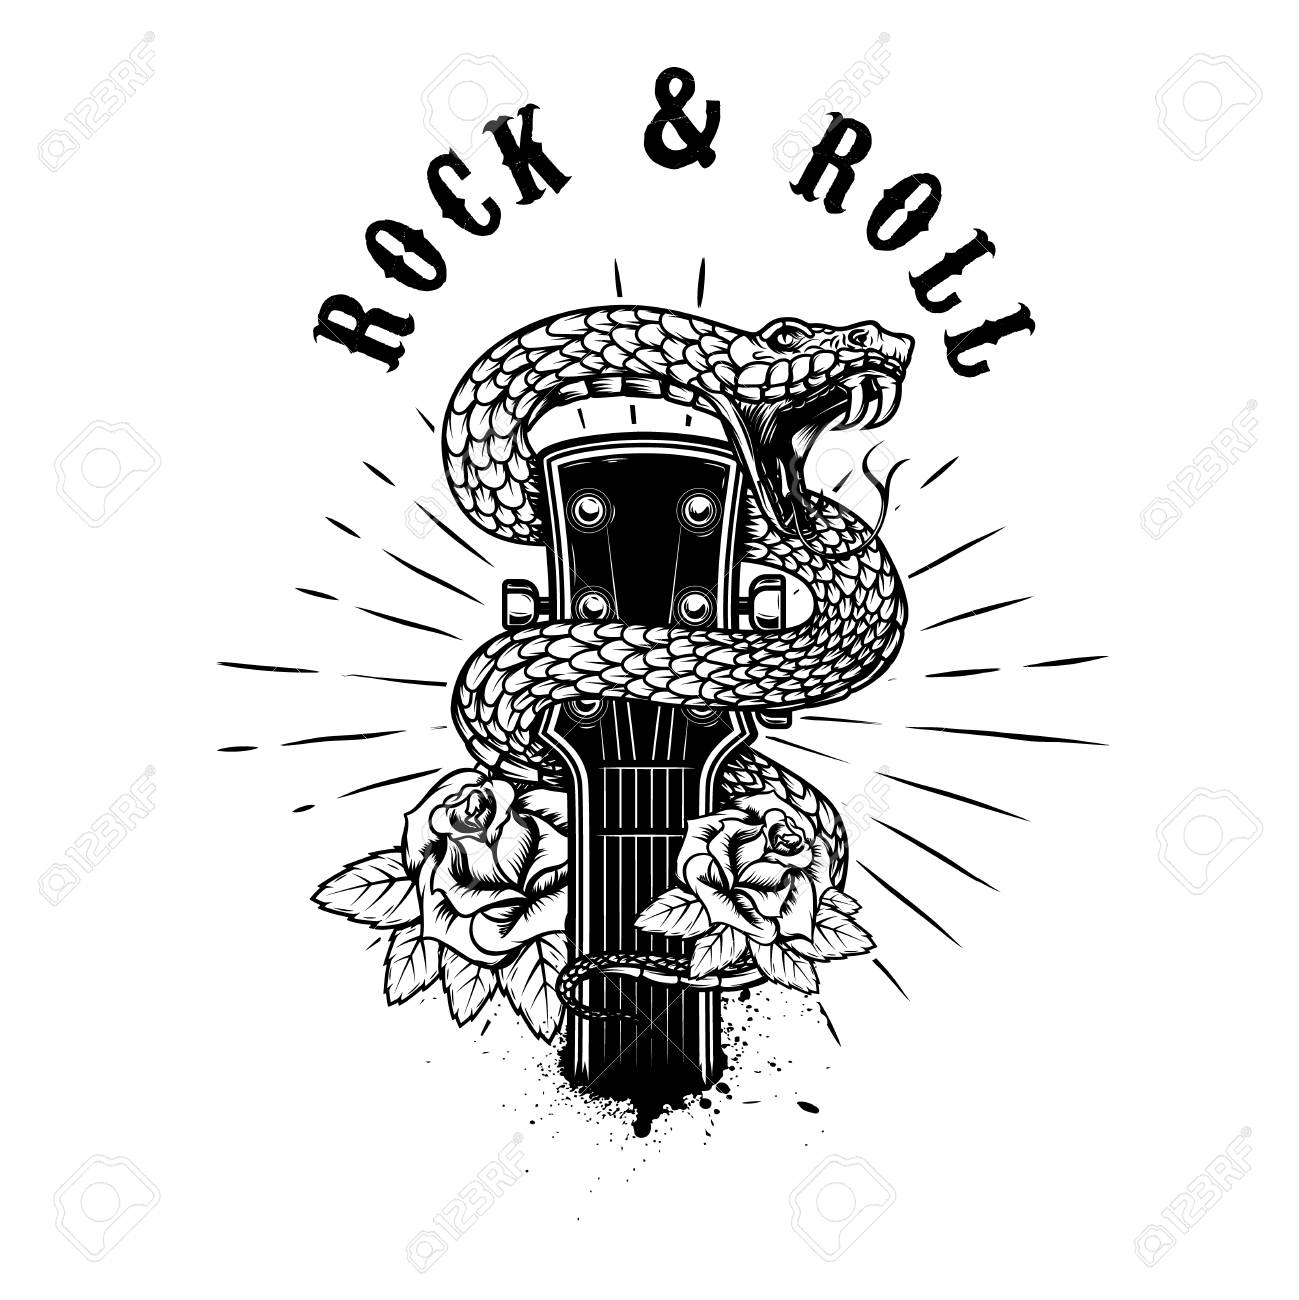 Rock and roll. Guitar head with snake and roses. Design element for poster, card, banner, emblem, shirt. Vector illustration - 100382388